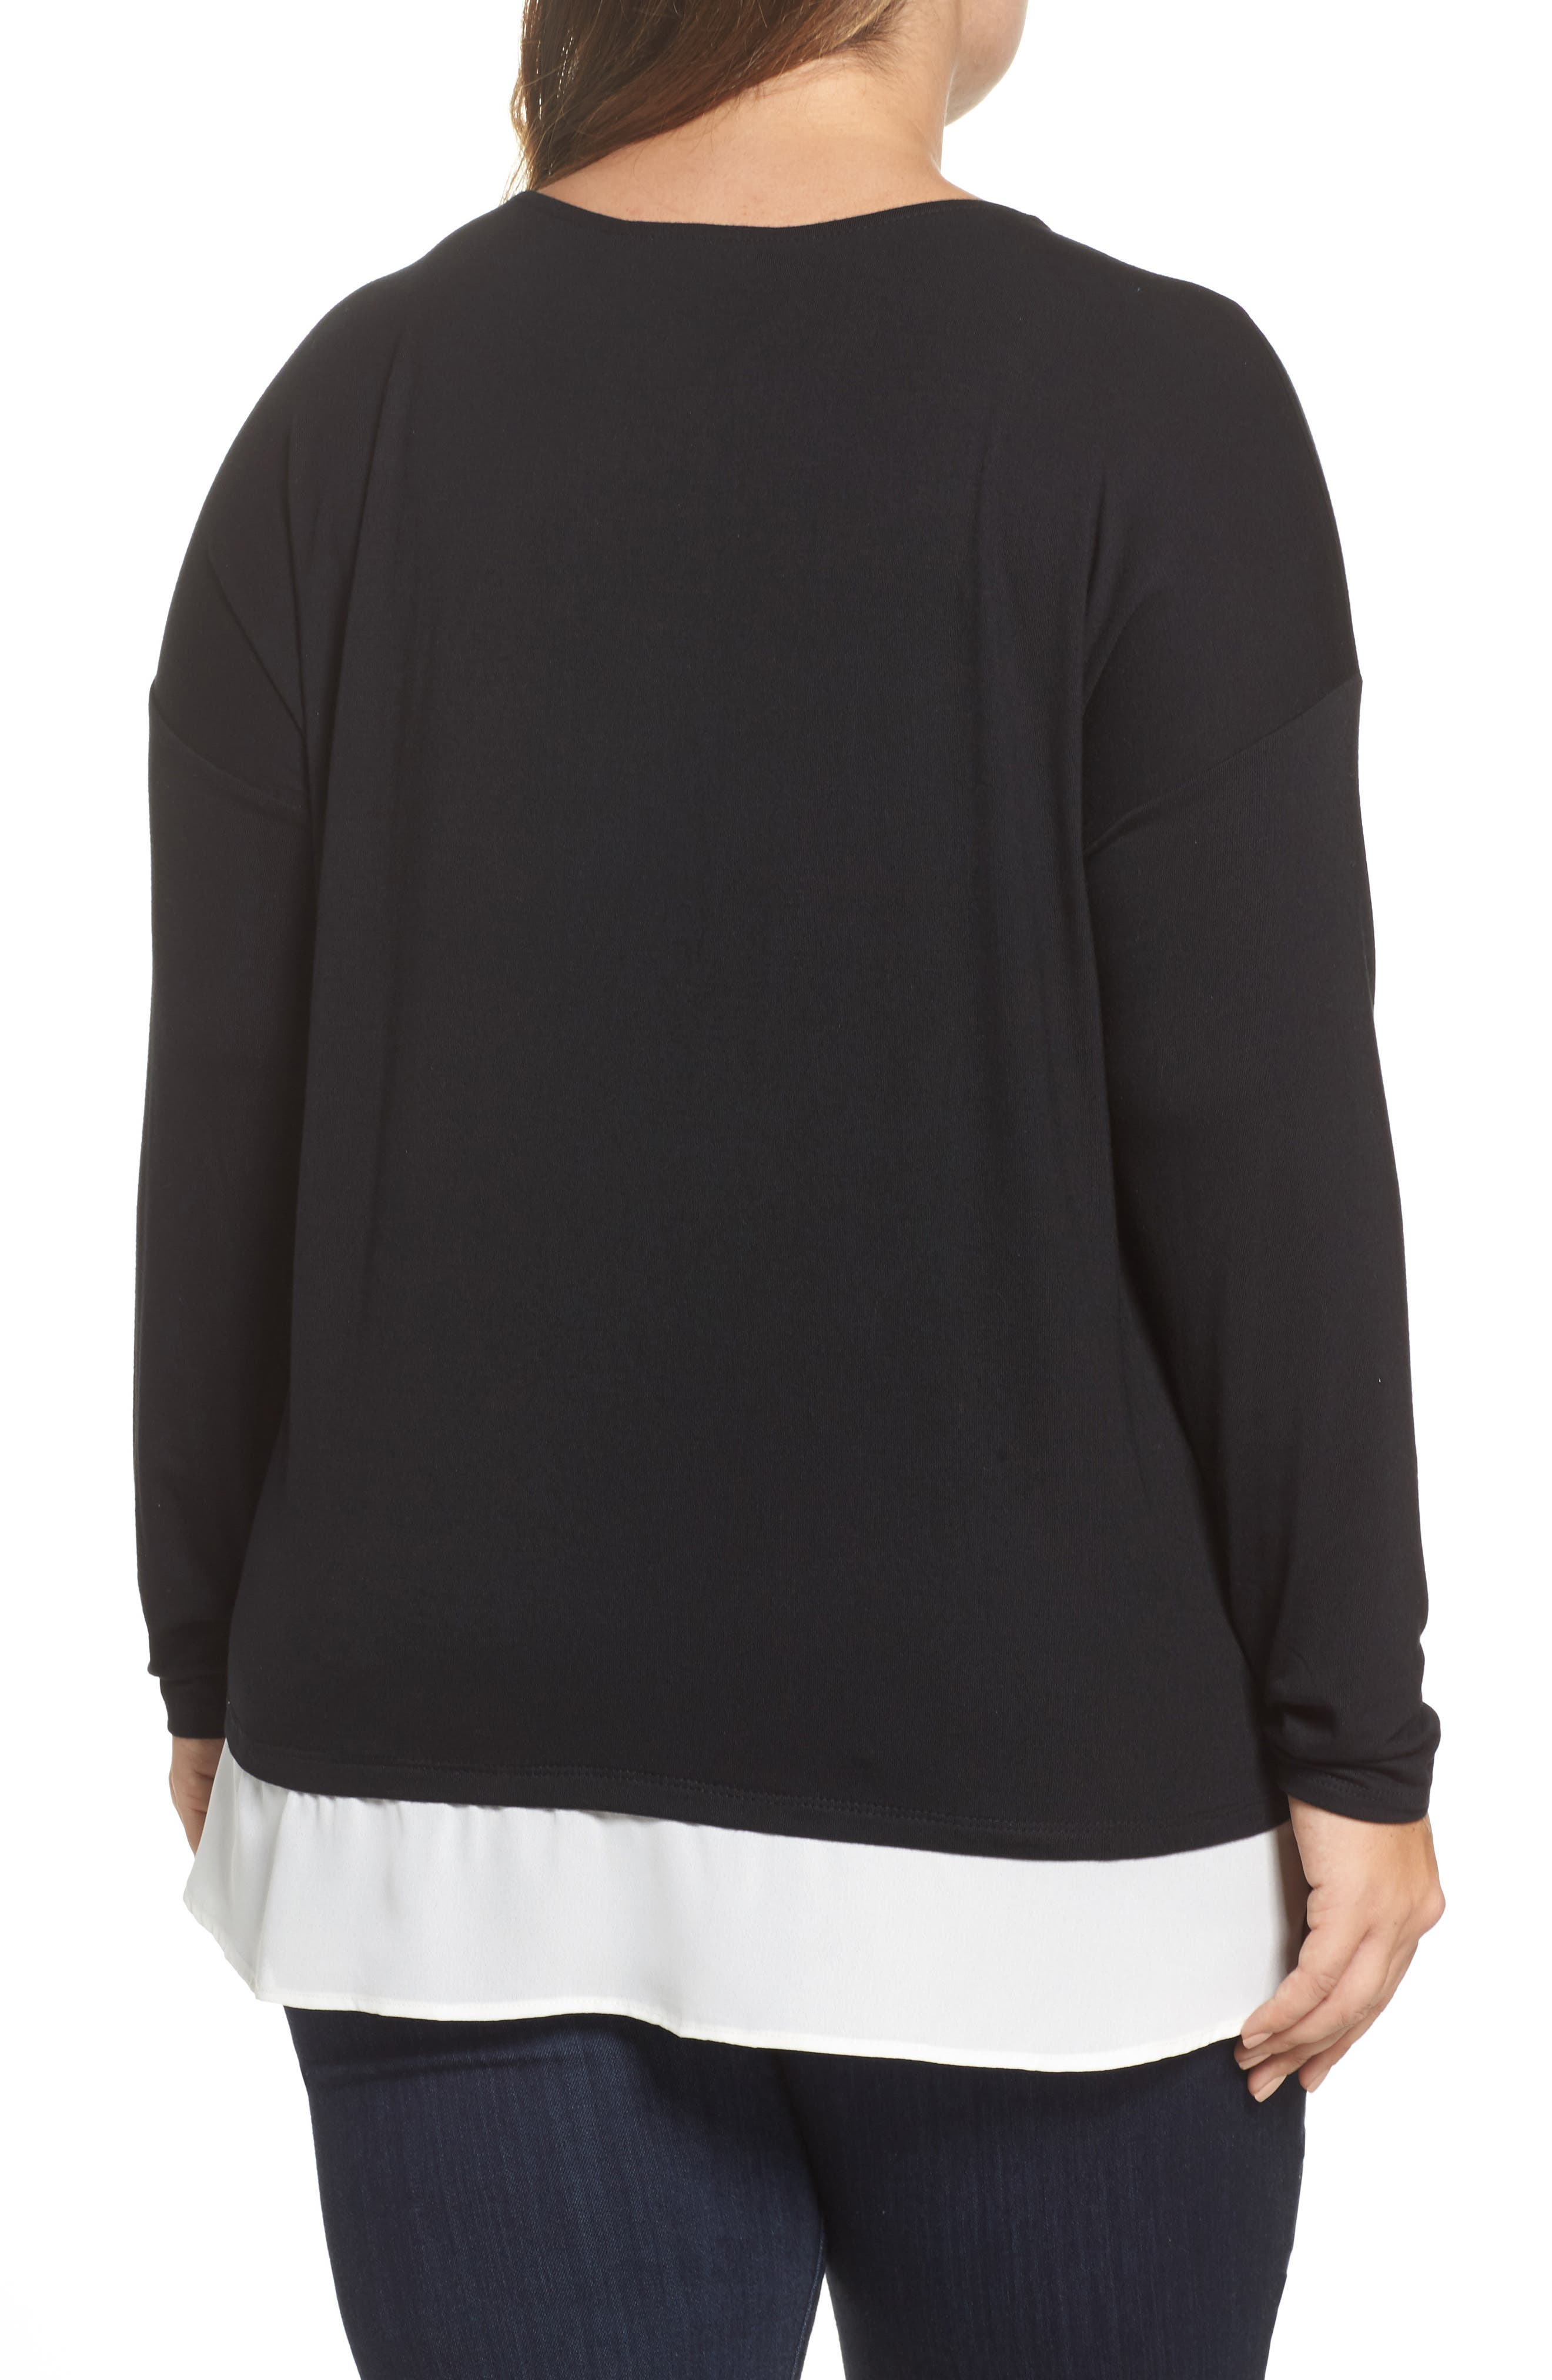 Alternate Image 2  - Sejour Layered Look Tie Hem Top (Plus Size)